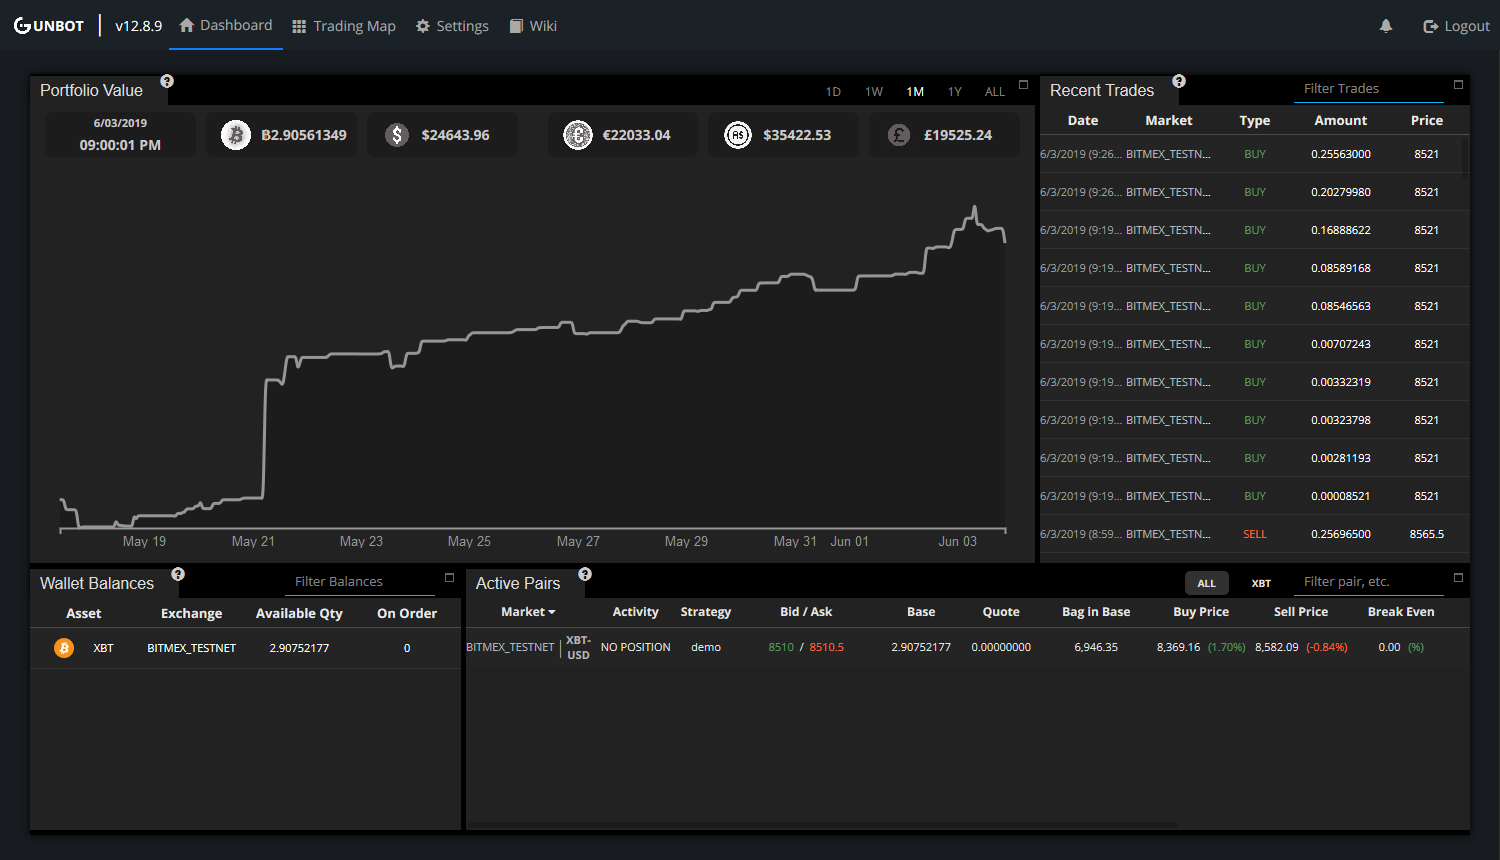 Gunbot dashboard